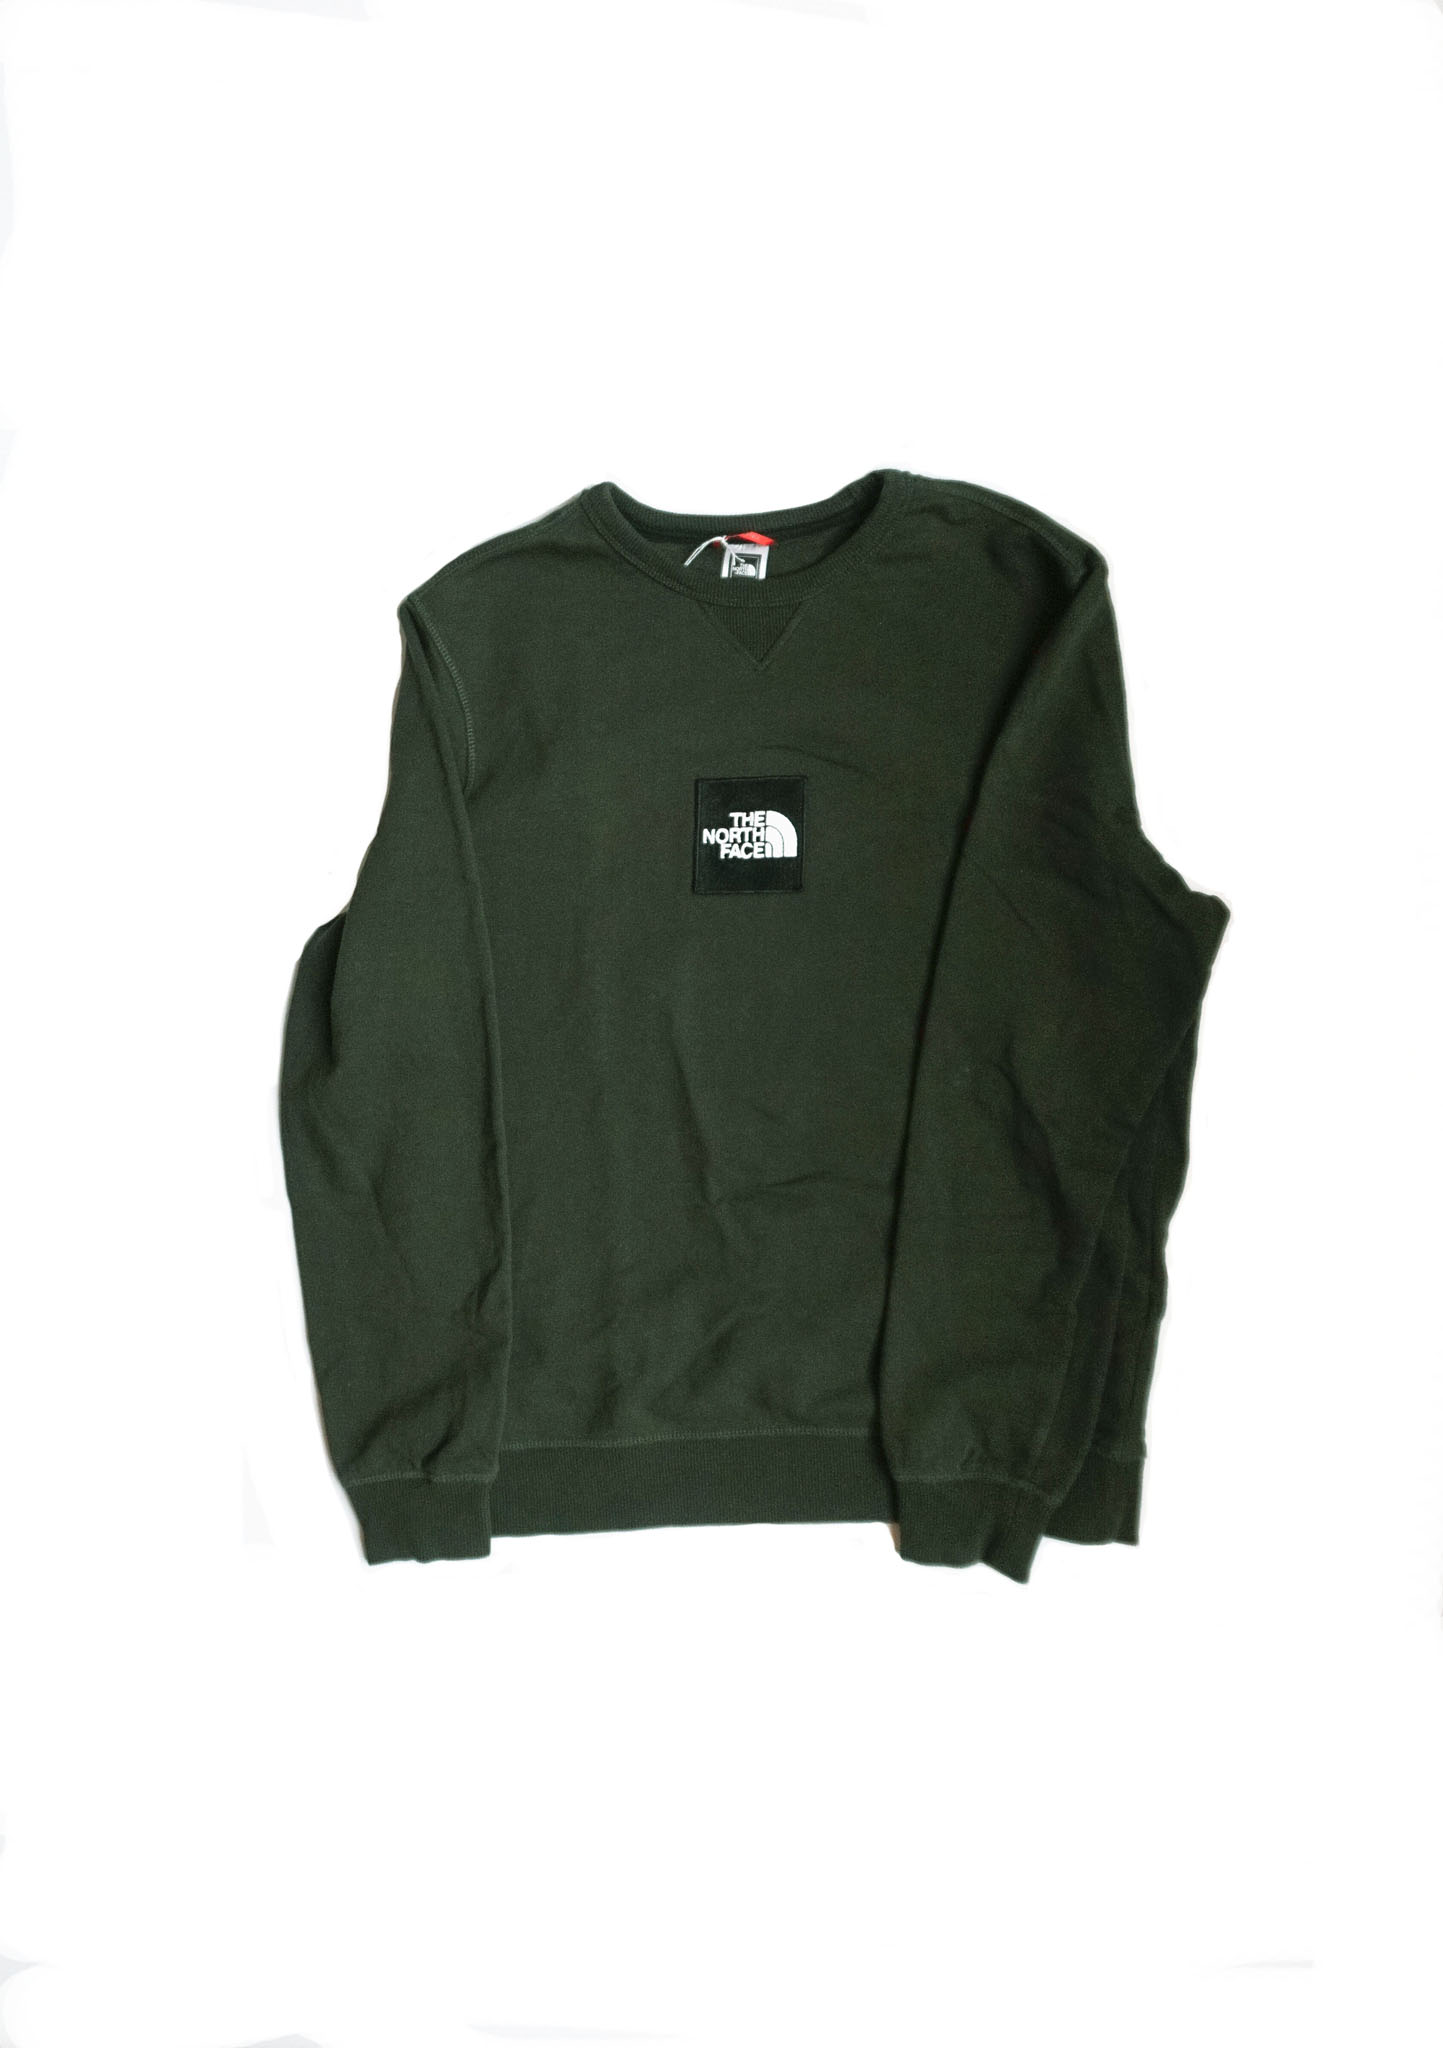 The North Face Crew Green